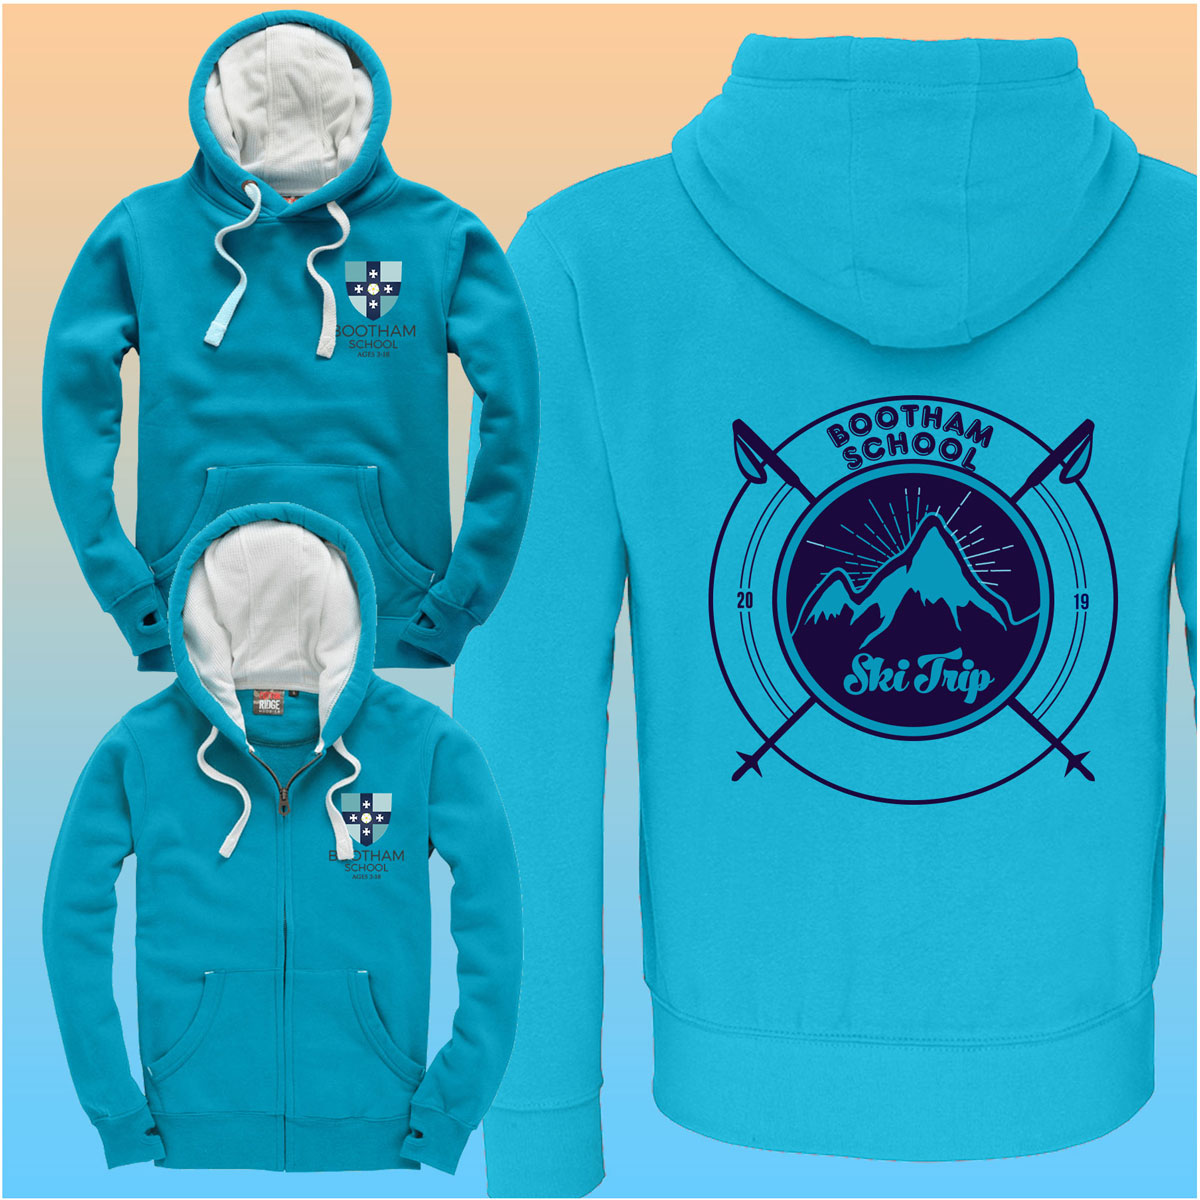 Bootham School Ski Hoodies